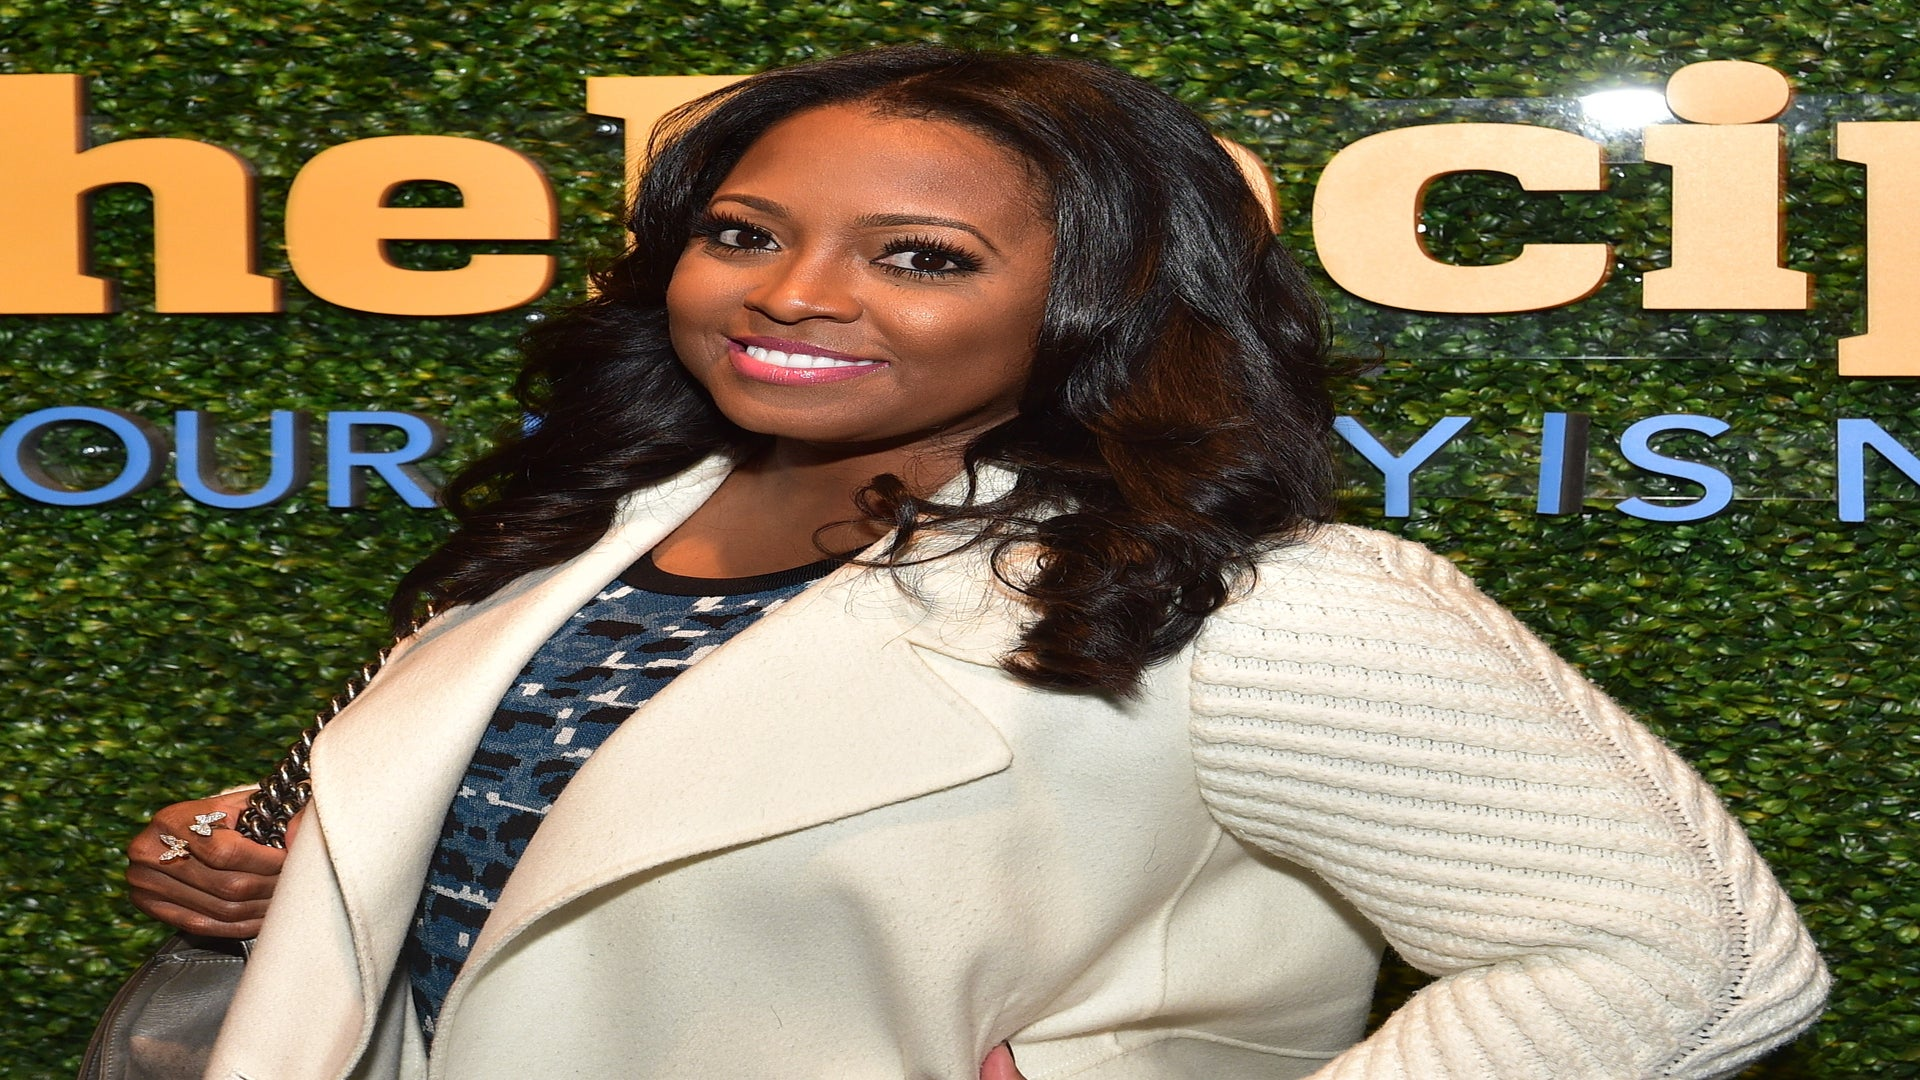 Keshia Knight Pulliam Addresses Divorce Drama, Says Ex Ed Hartwell Cheated